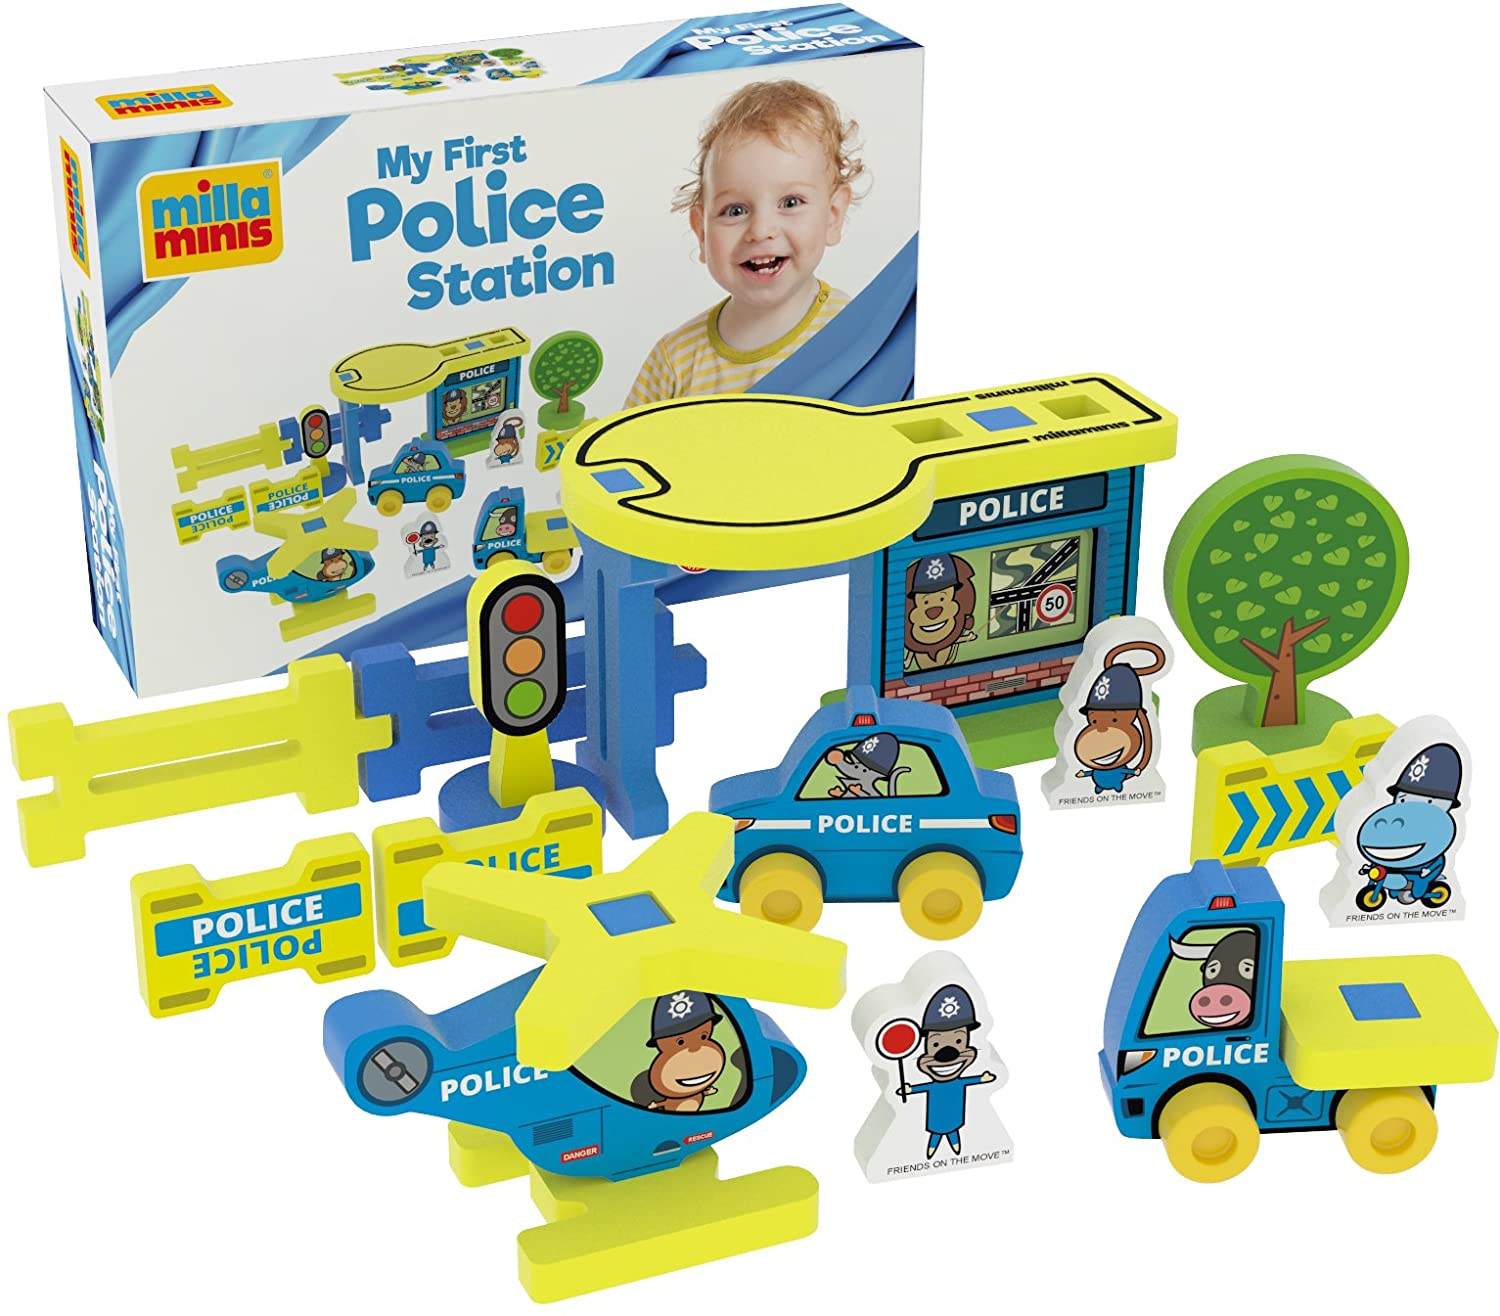 Millaminis Millaminis0071 22 Pieces My First Police Station, Multi-Color